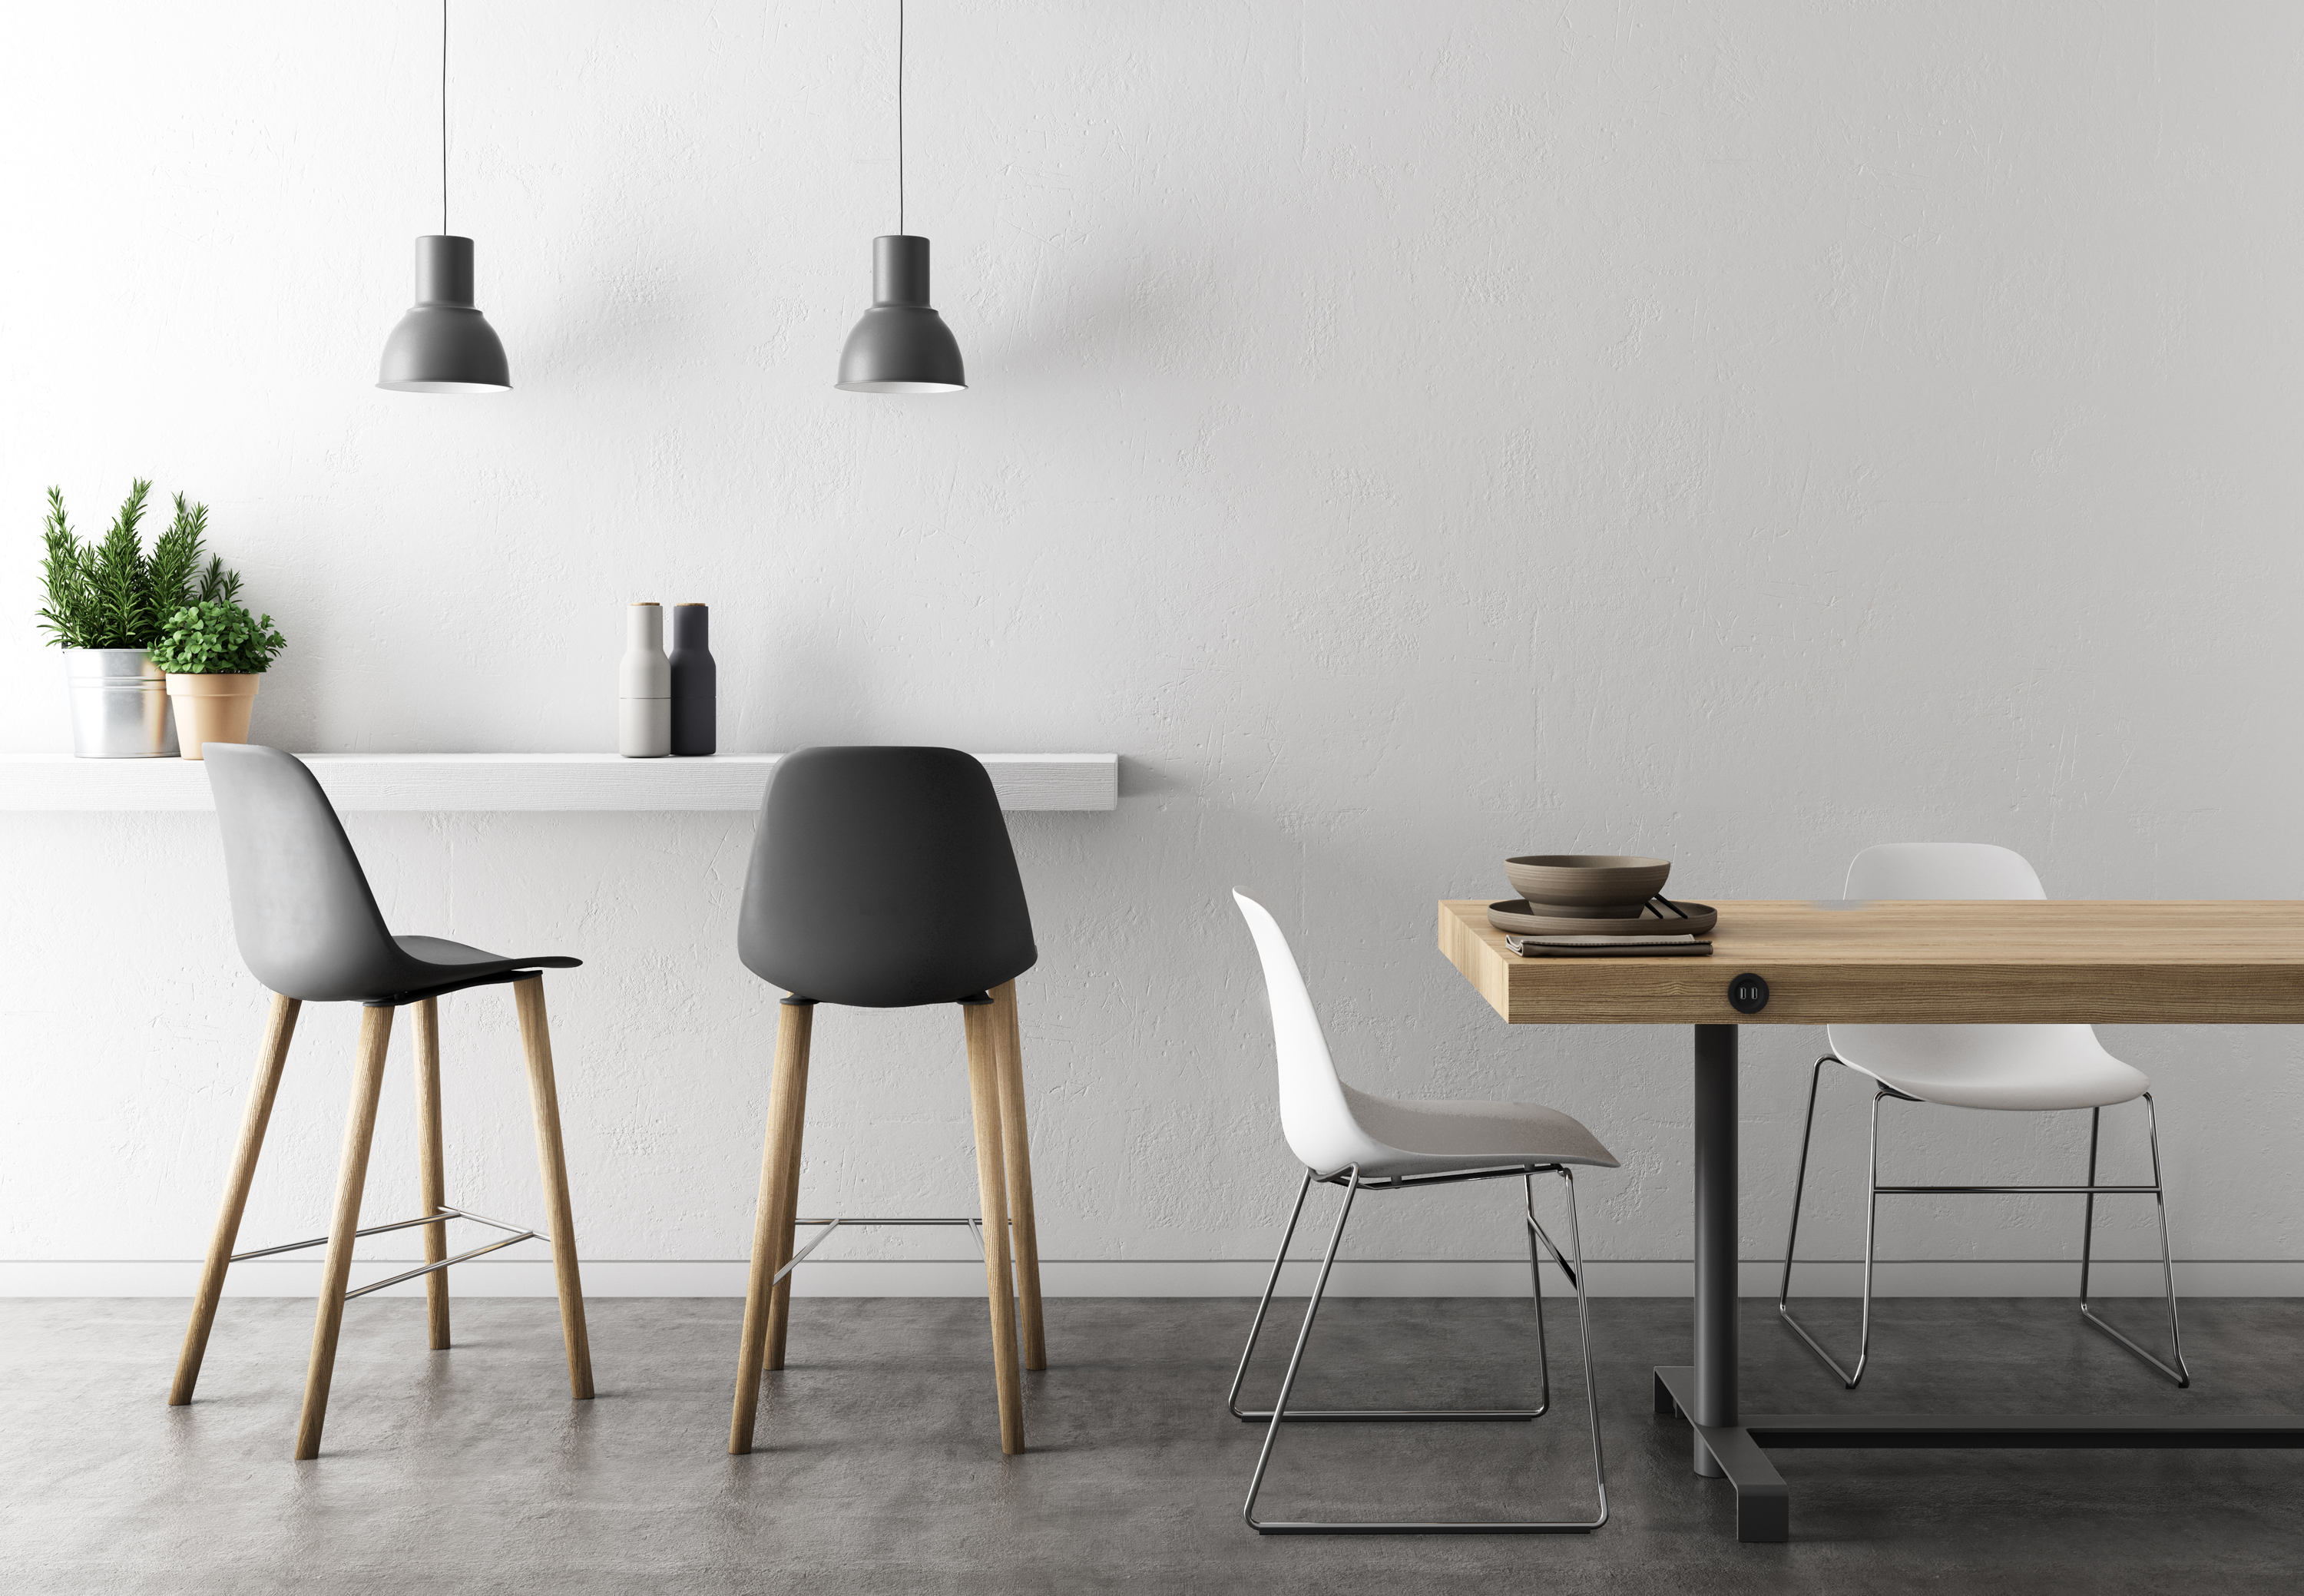 01S_Estel_comfort&Relax_Chairs&Stool_Pola